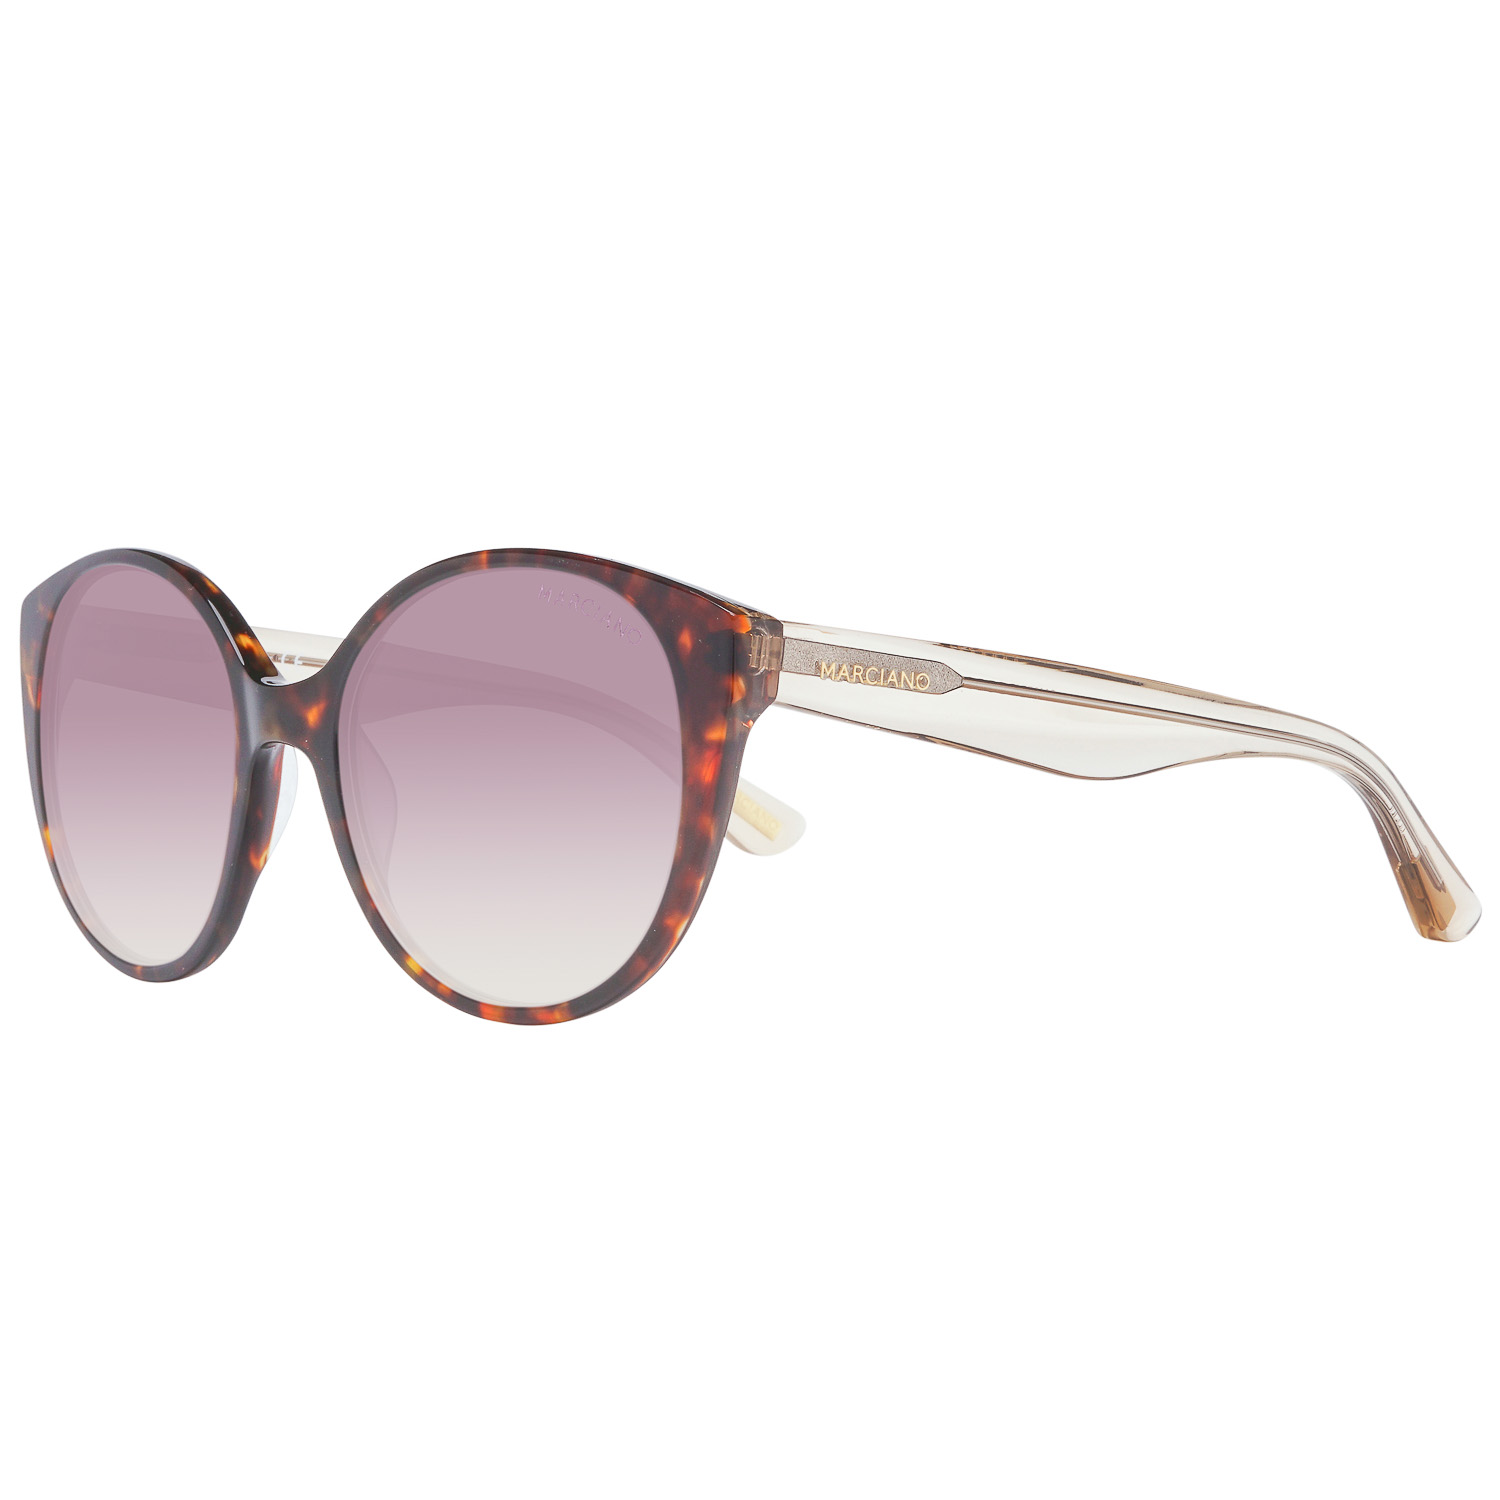 Guess by Marciano Sunglasses GM0772 52G 55 Brown